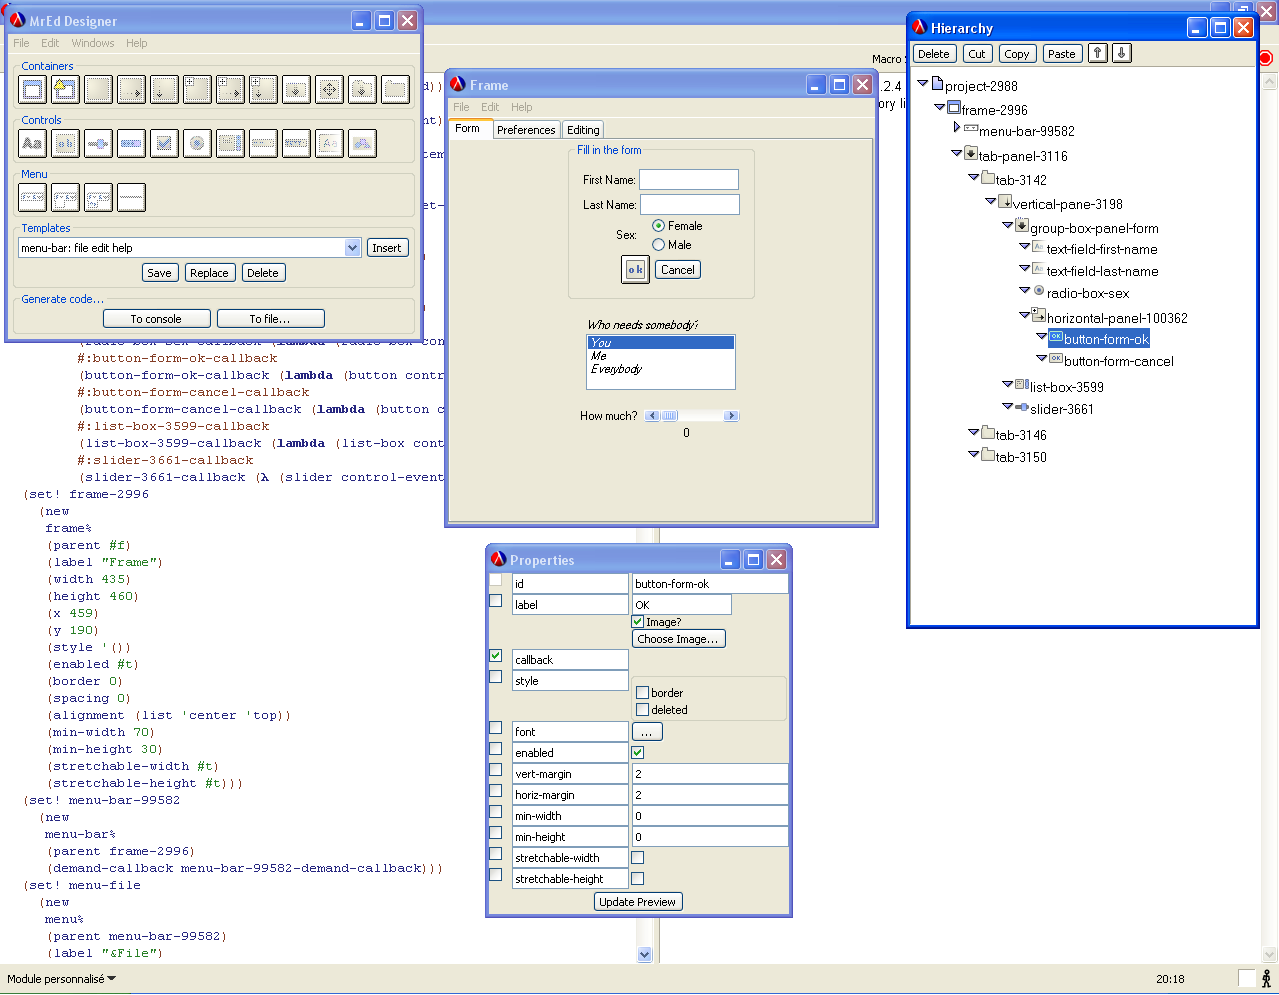 General view with generated code in background